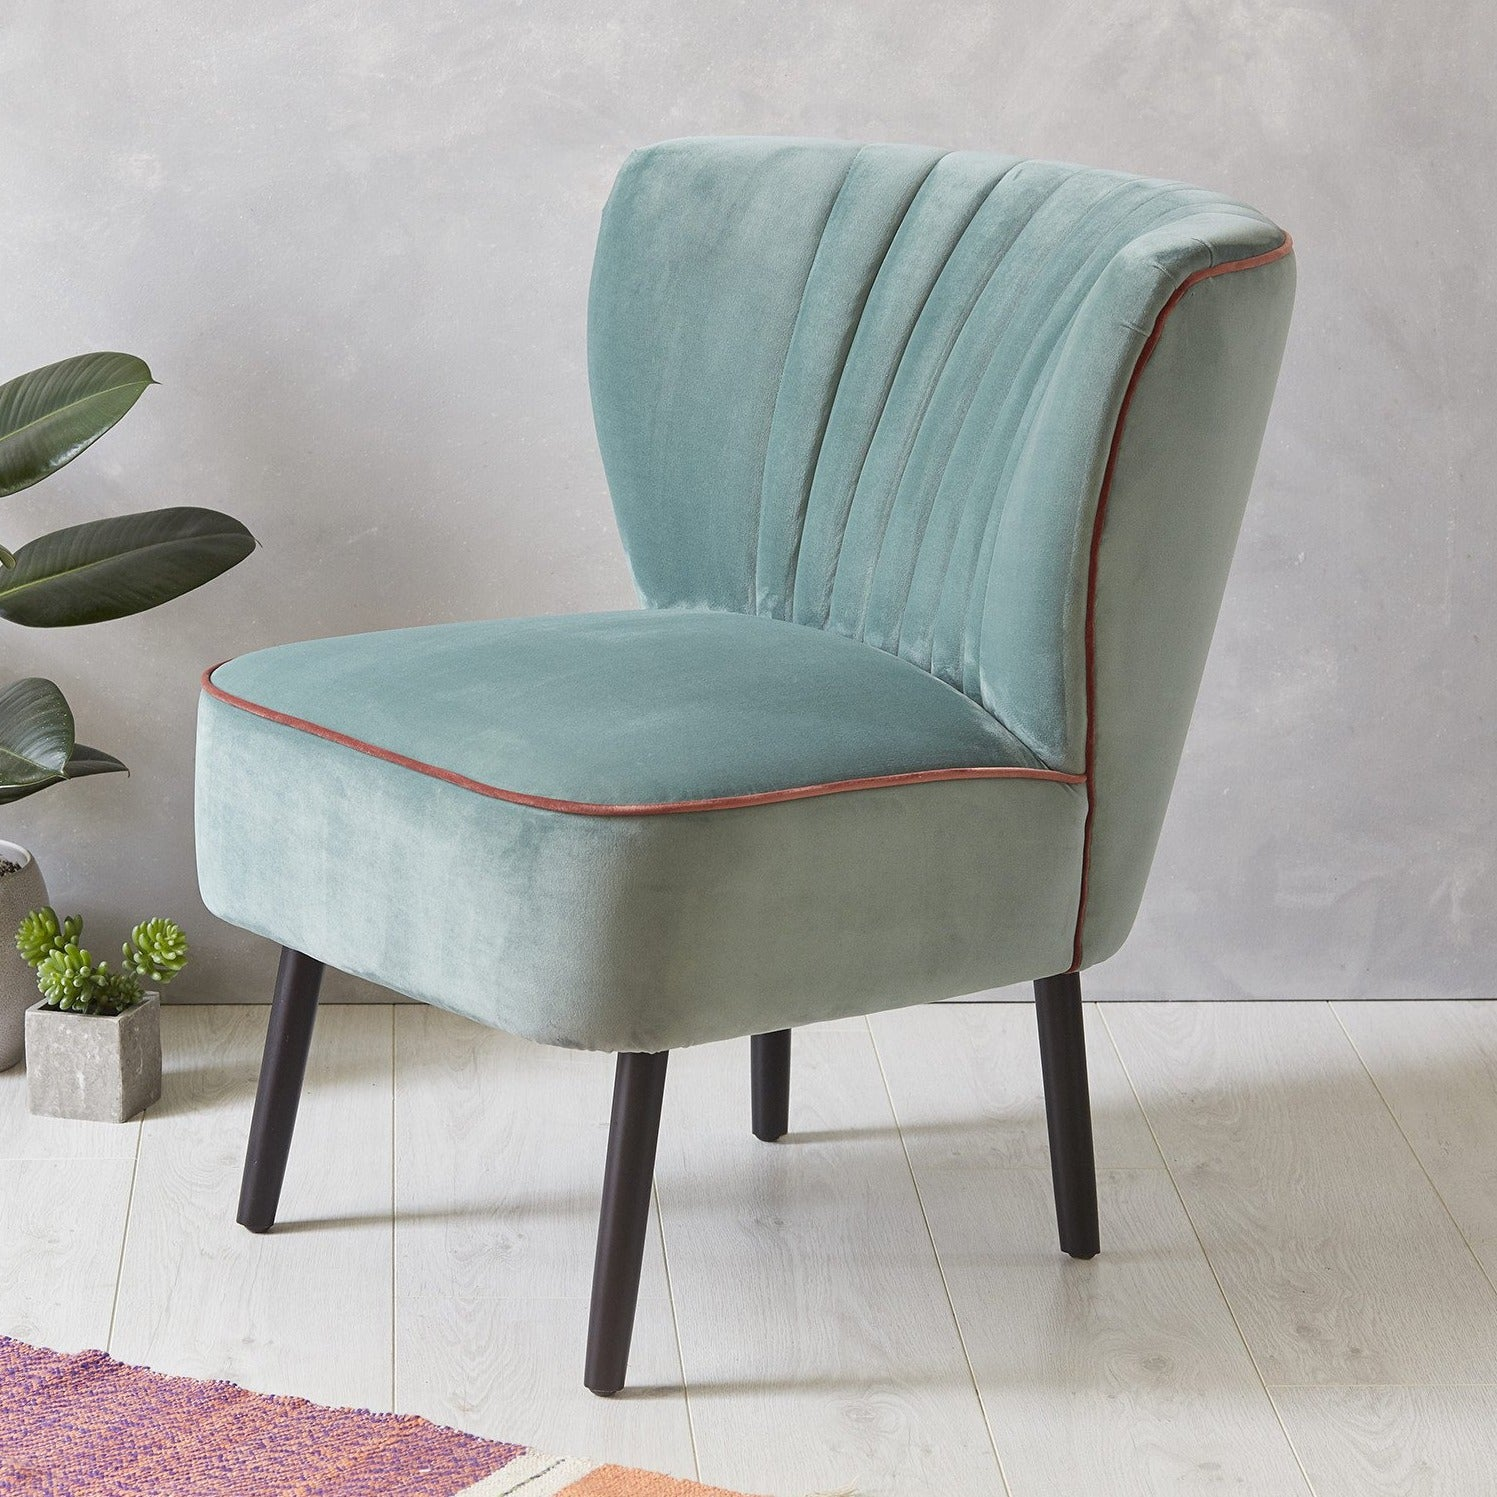 Lula Cocktail Chair, Mint with Blush Pink Piping